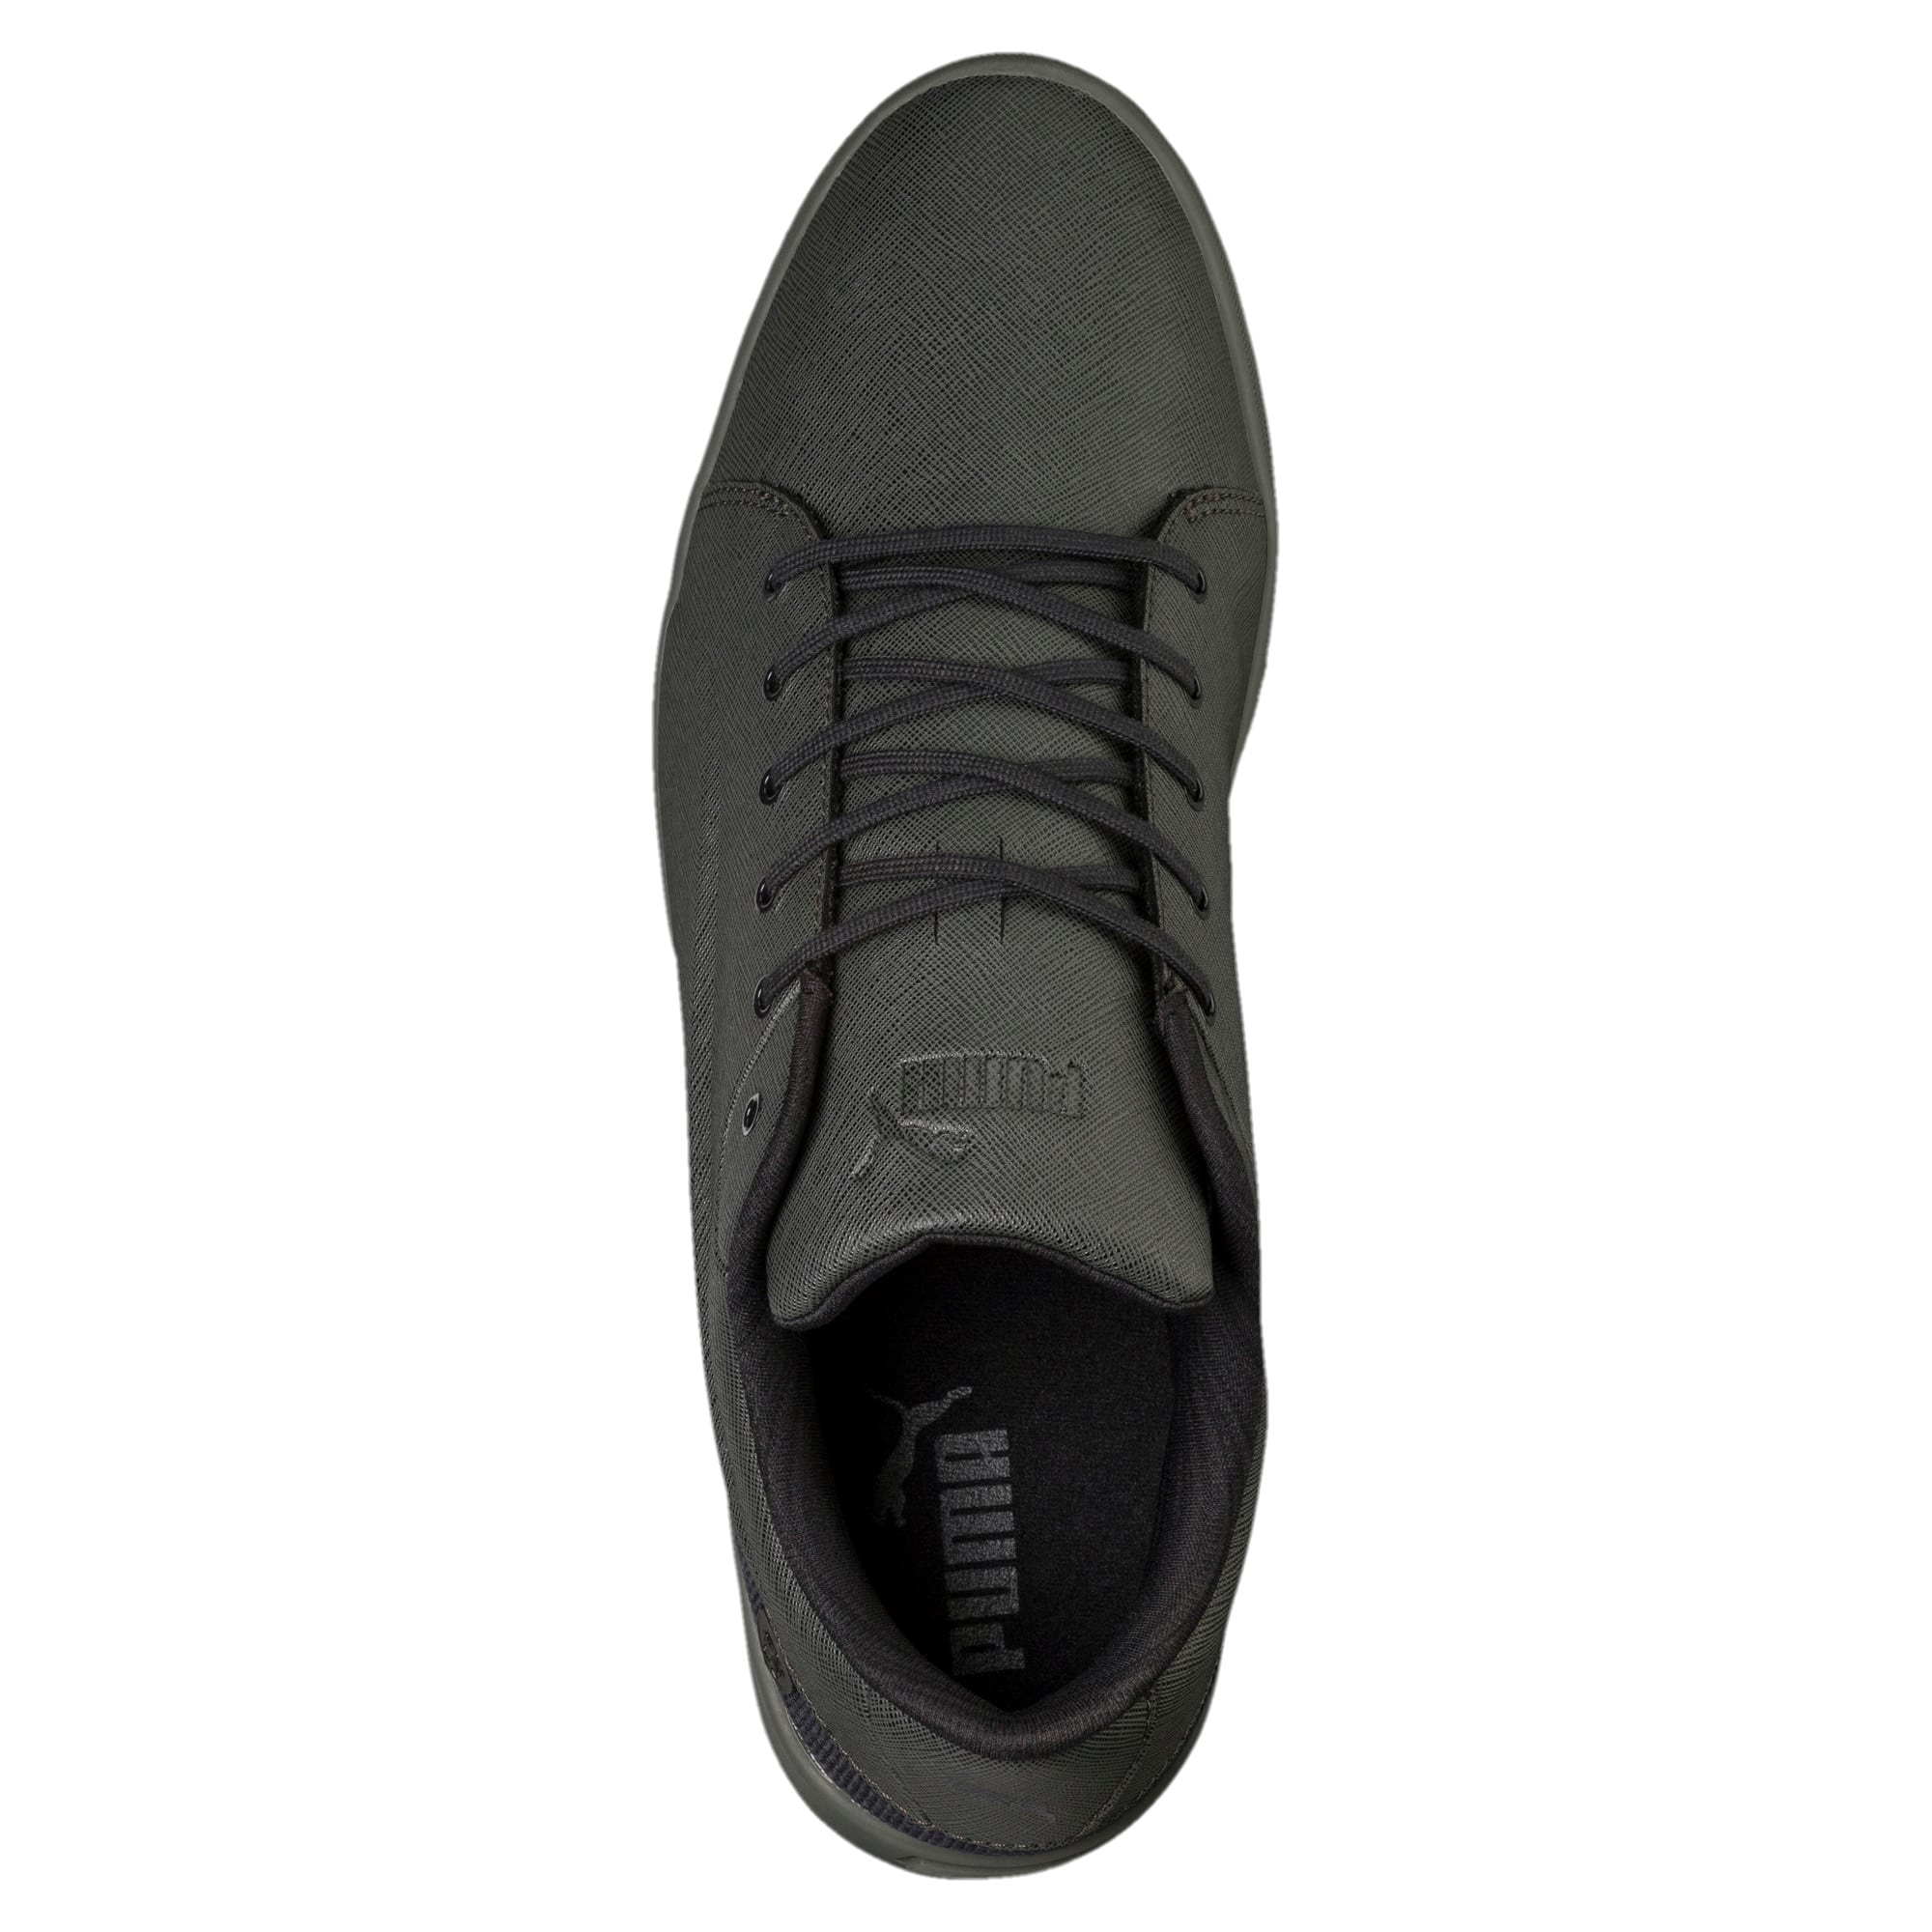 Thumbnail 5 of Ferrari Wayfarer Trainers, Moonless Night-Dark Shadow, medium-IND